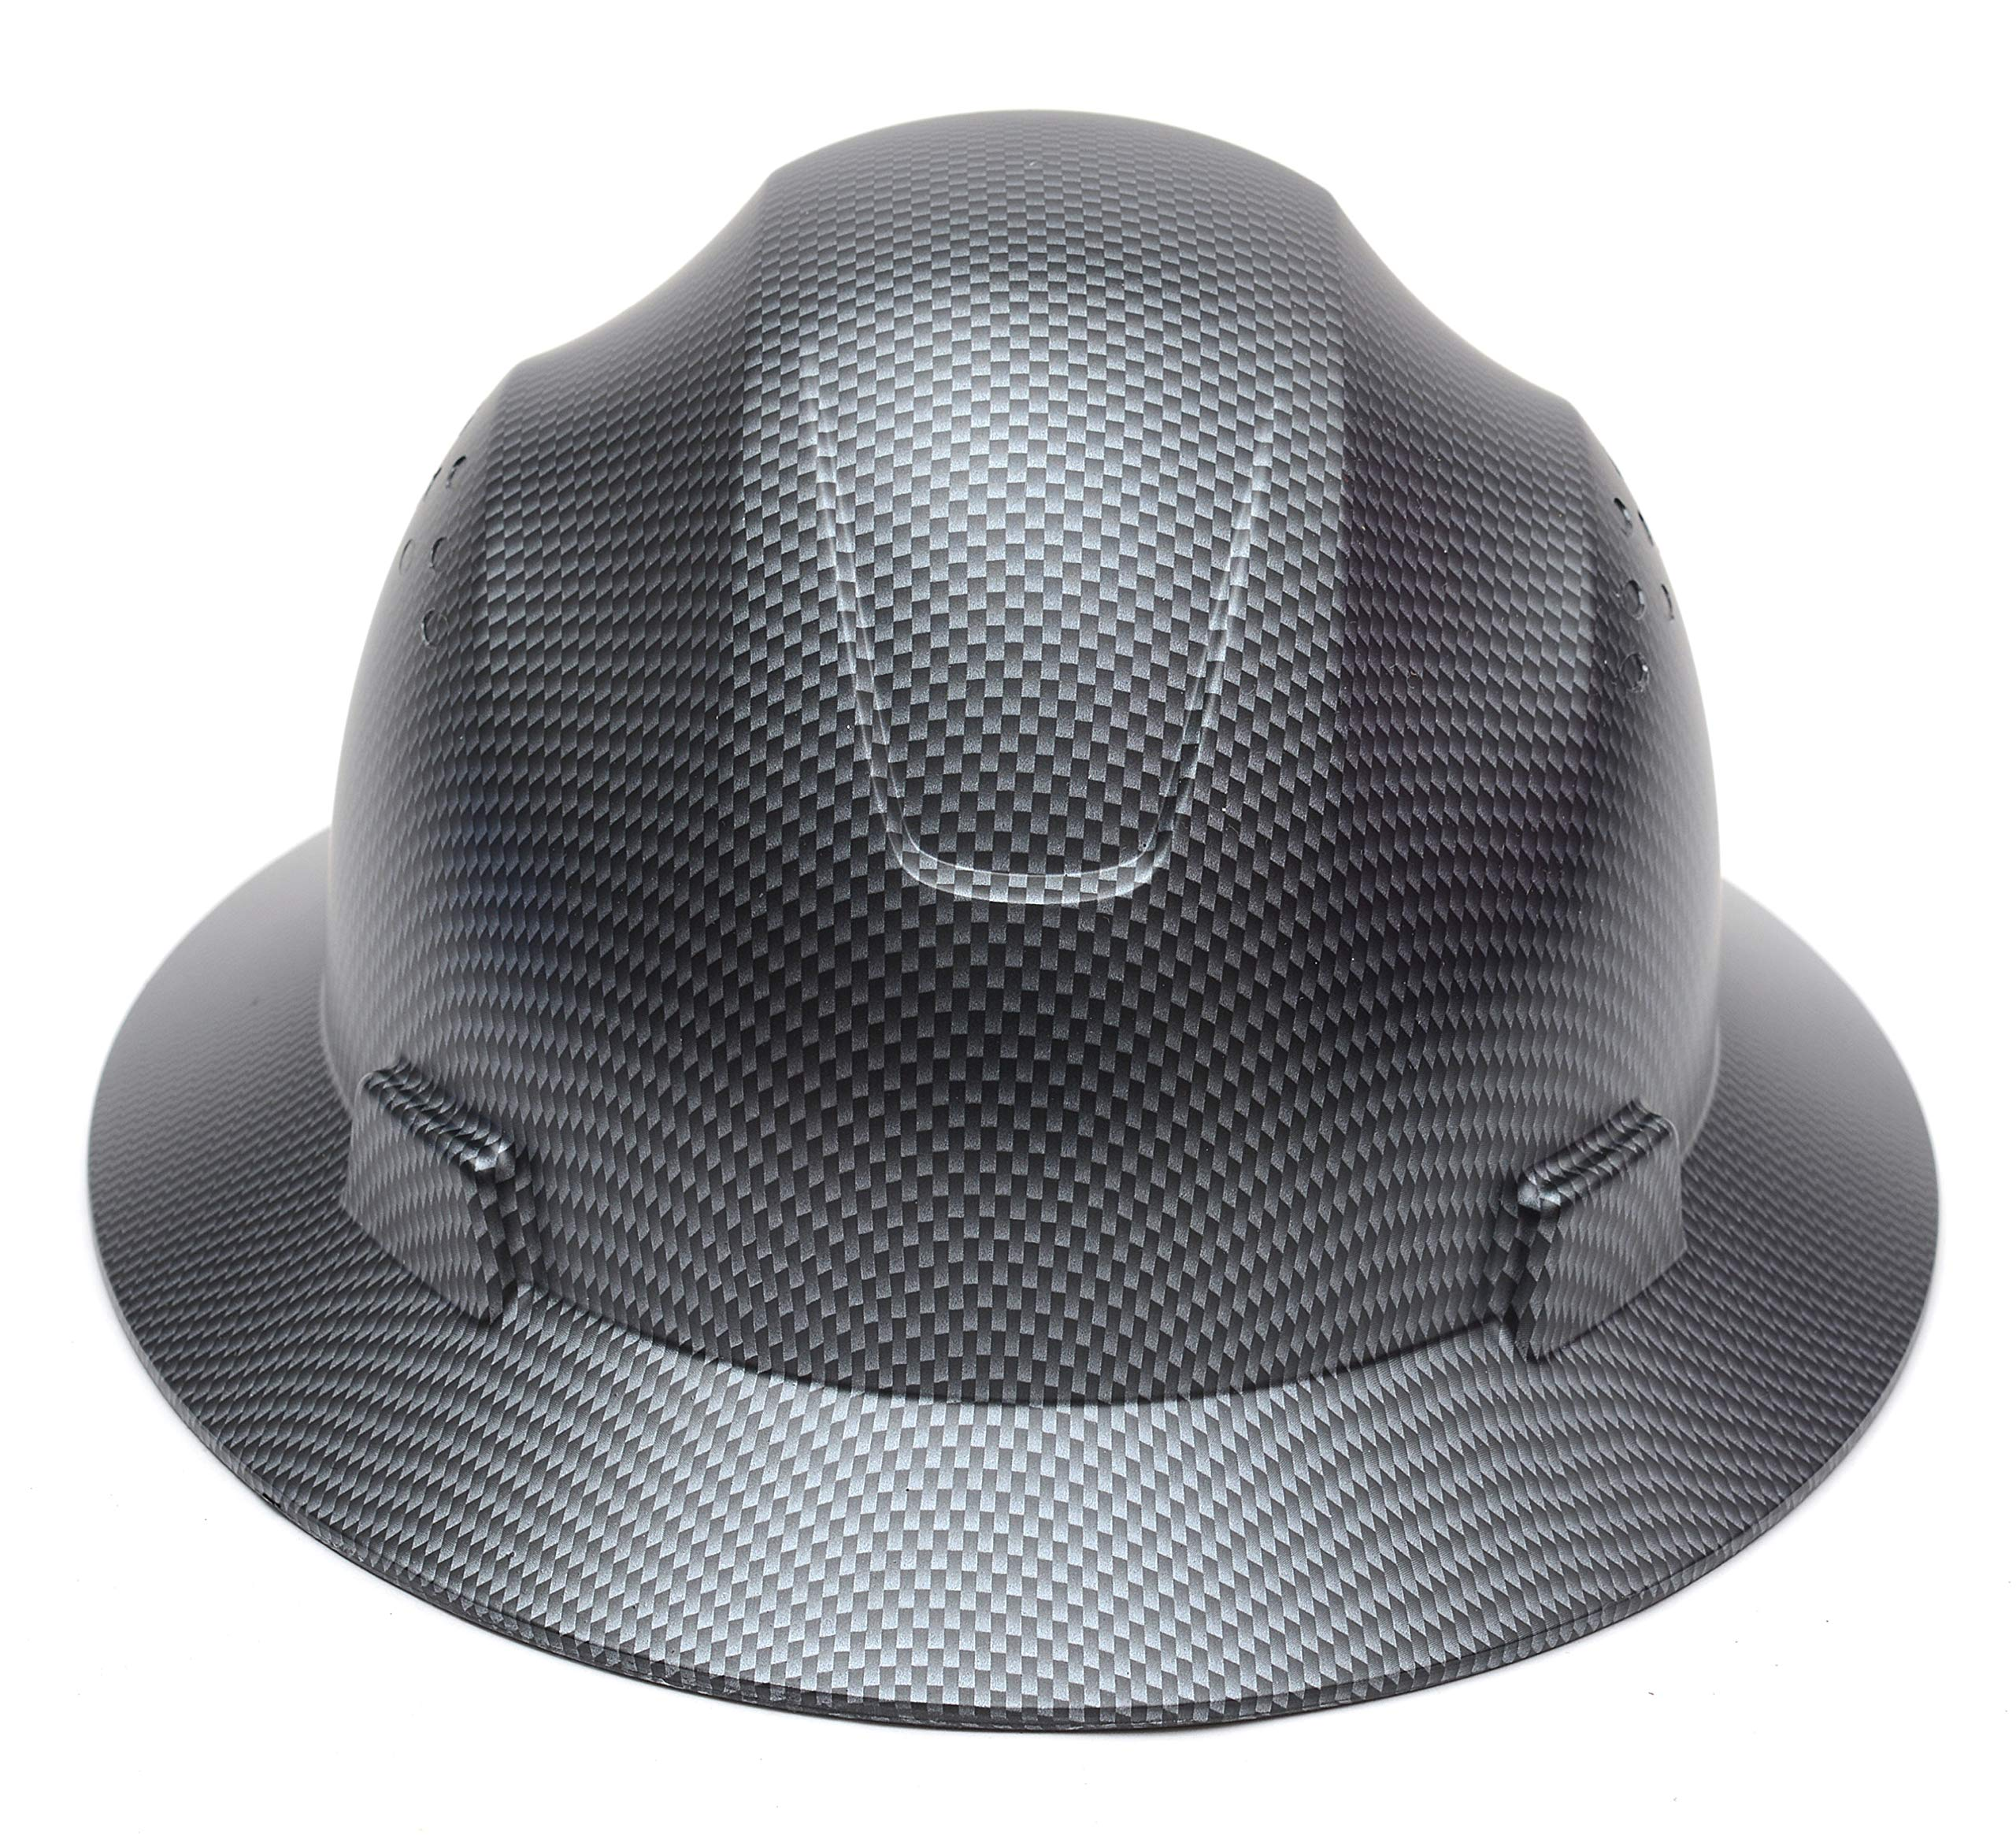 CJ Safety Full Brim Fiber Glass Hard Hat with Fas-Trac Suspension (Black)